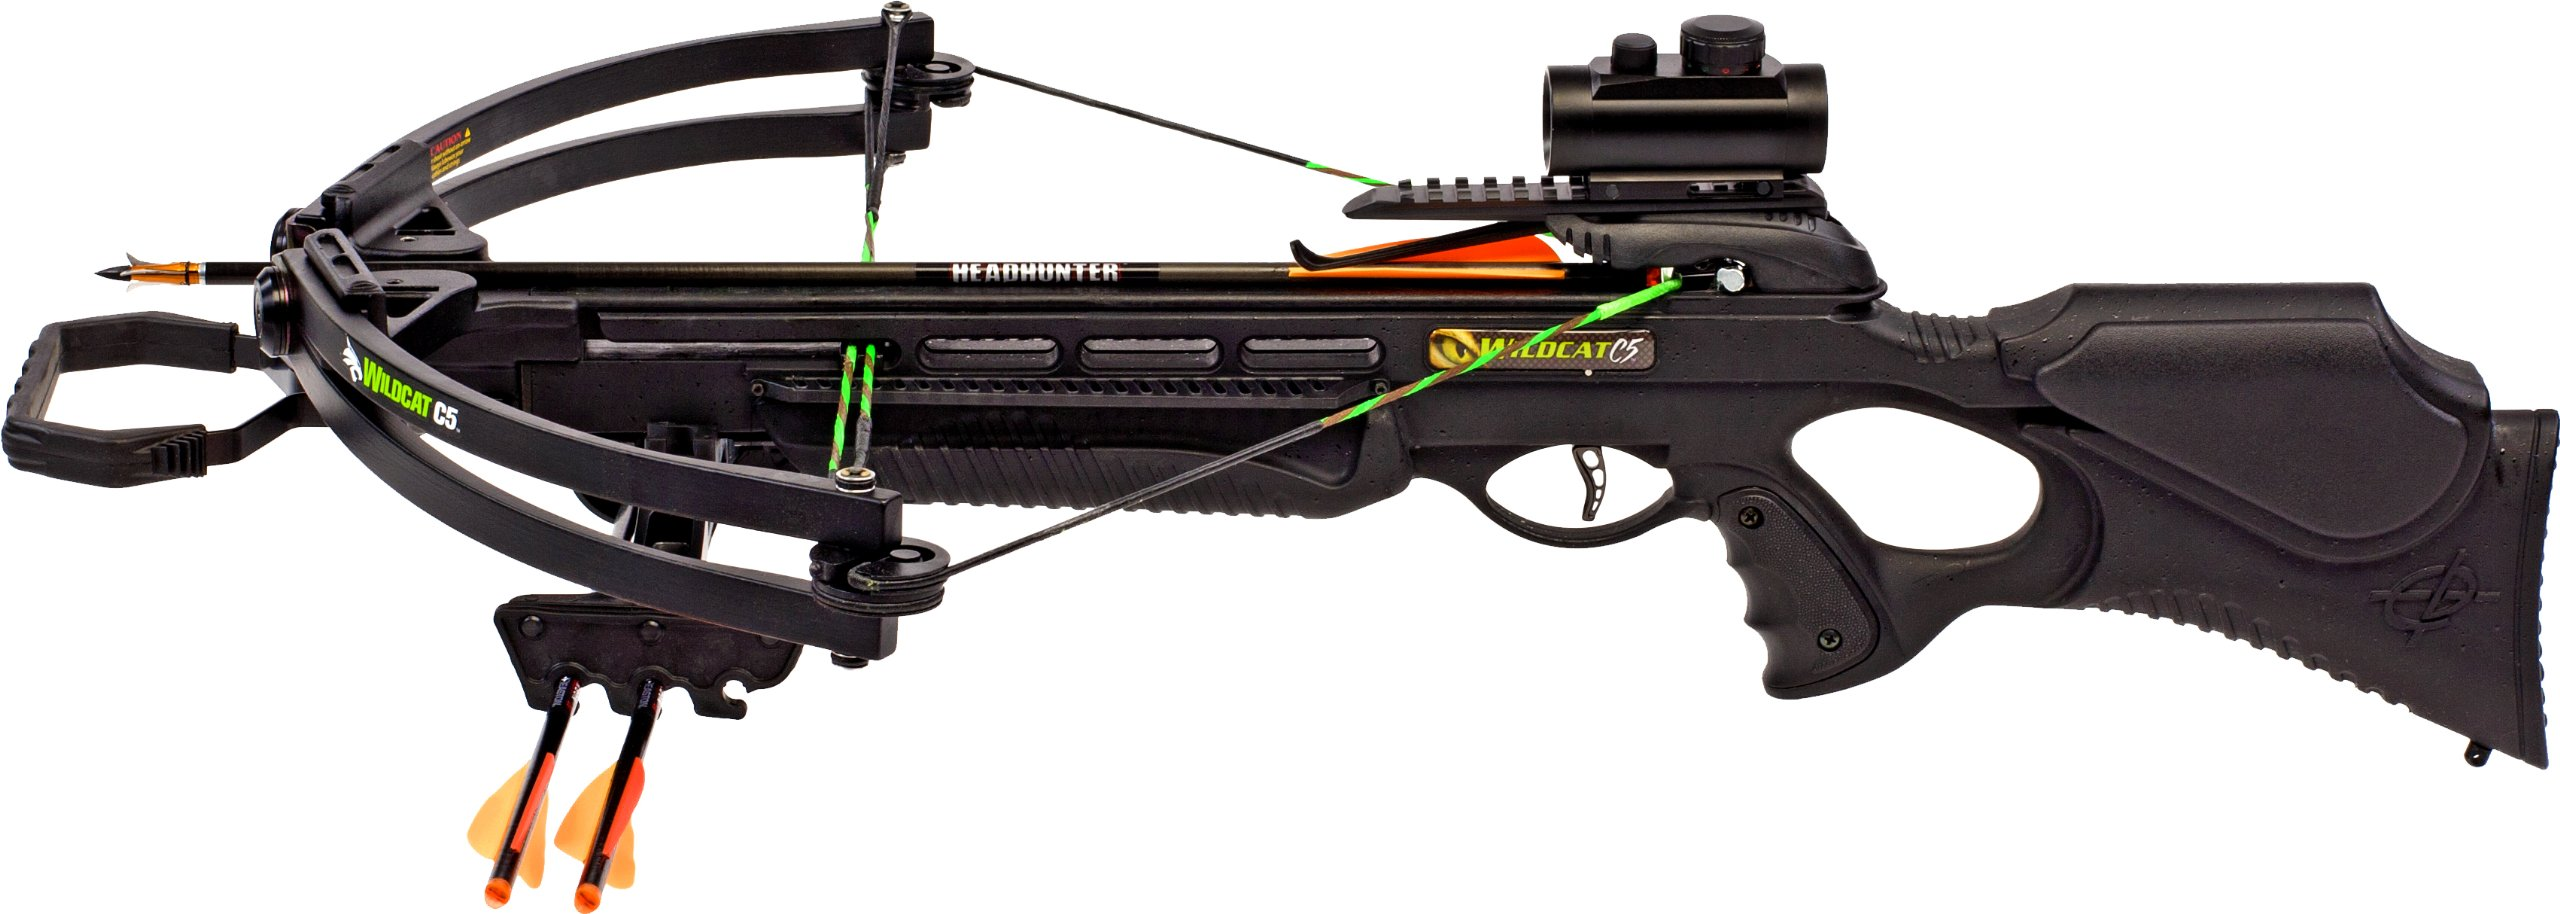 Barnett Wildcat C5 Black Crossbow Package (Quiver, 3 - 20-Inch Arrows and Premium Red Dot Sight) by Barnett (Image #2)